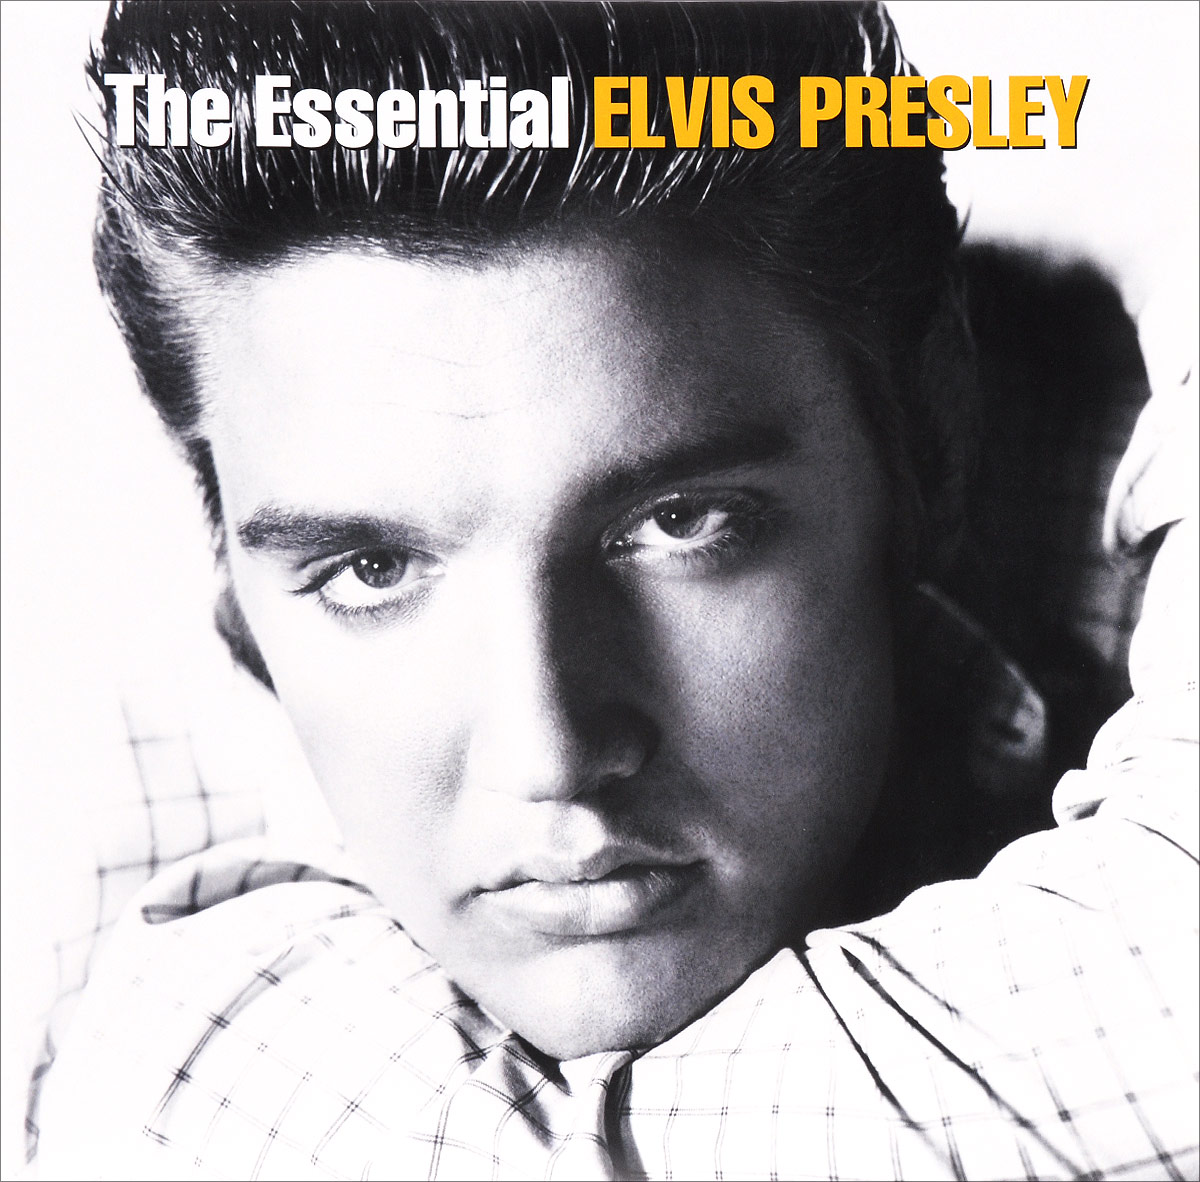 Элвис Пресли Elvis Presley. The Essential (2 LP) elvis presley elvis presley the essential elvis presley 2 lp